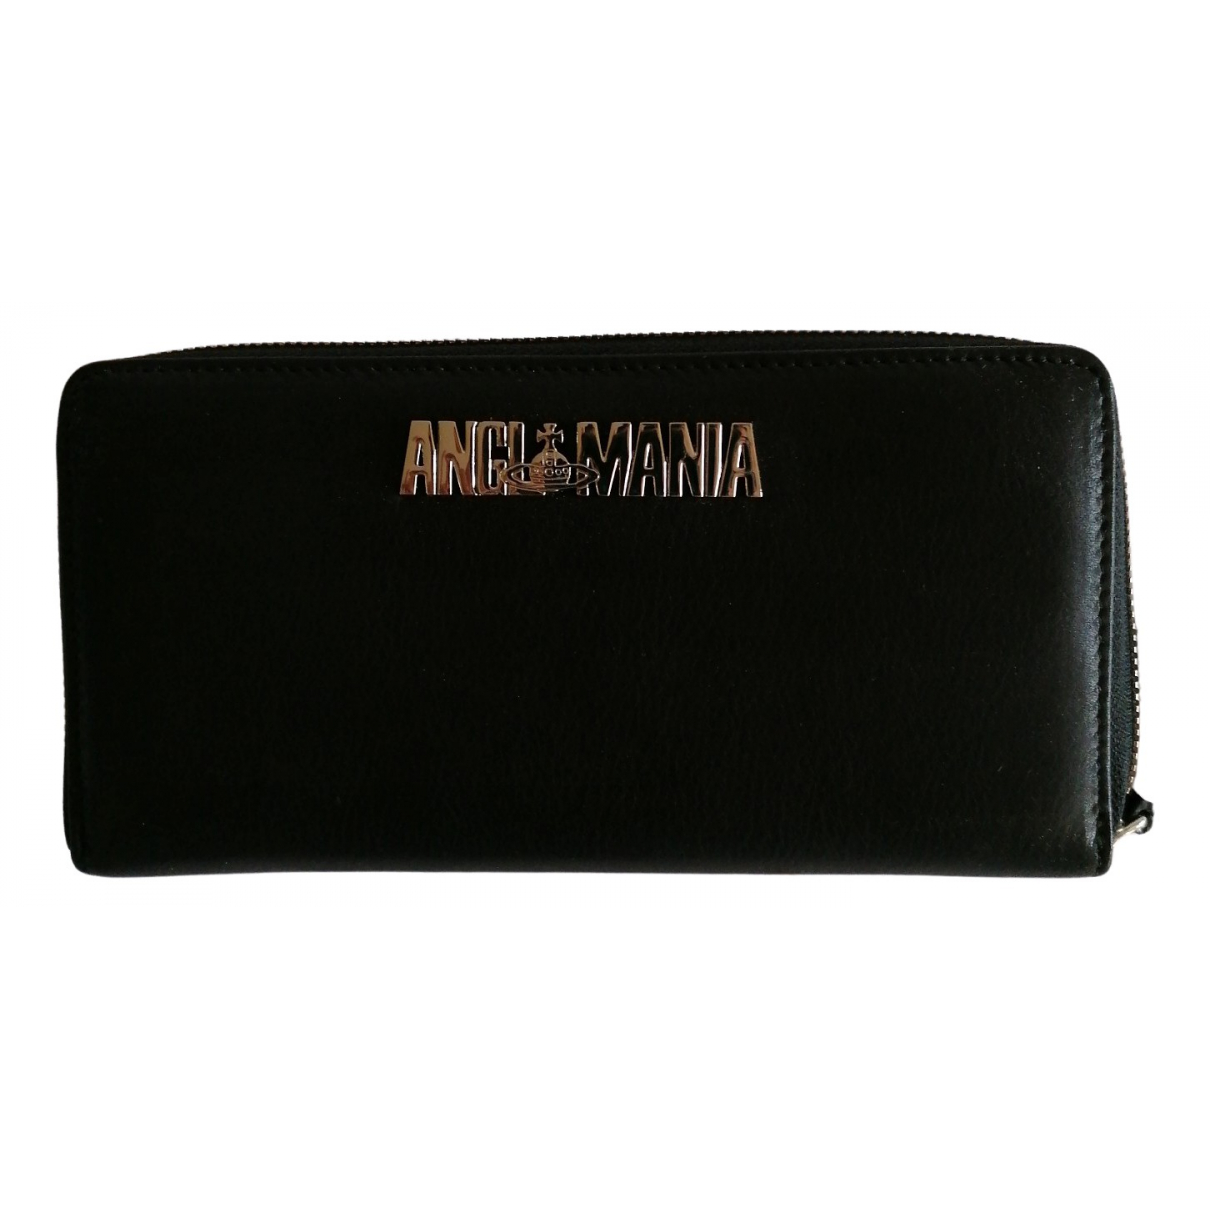 Vivienne Westwood Anglomania \N Black Leather wallet for Women \N